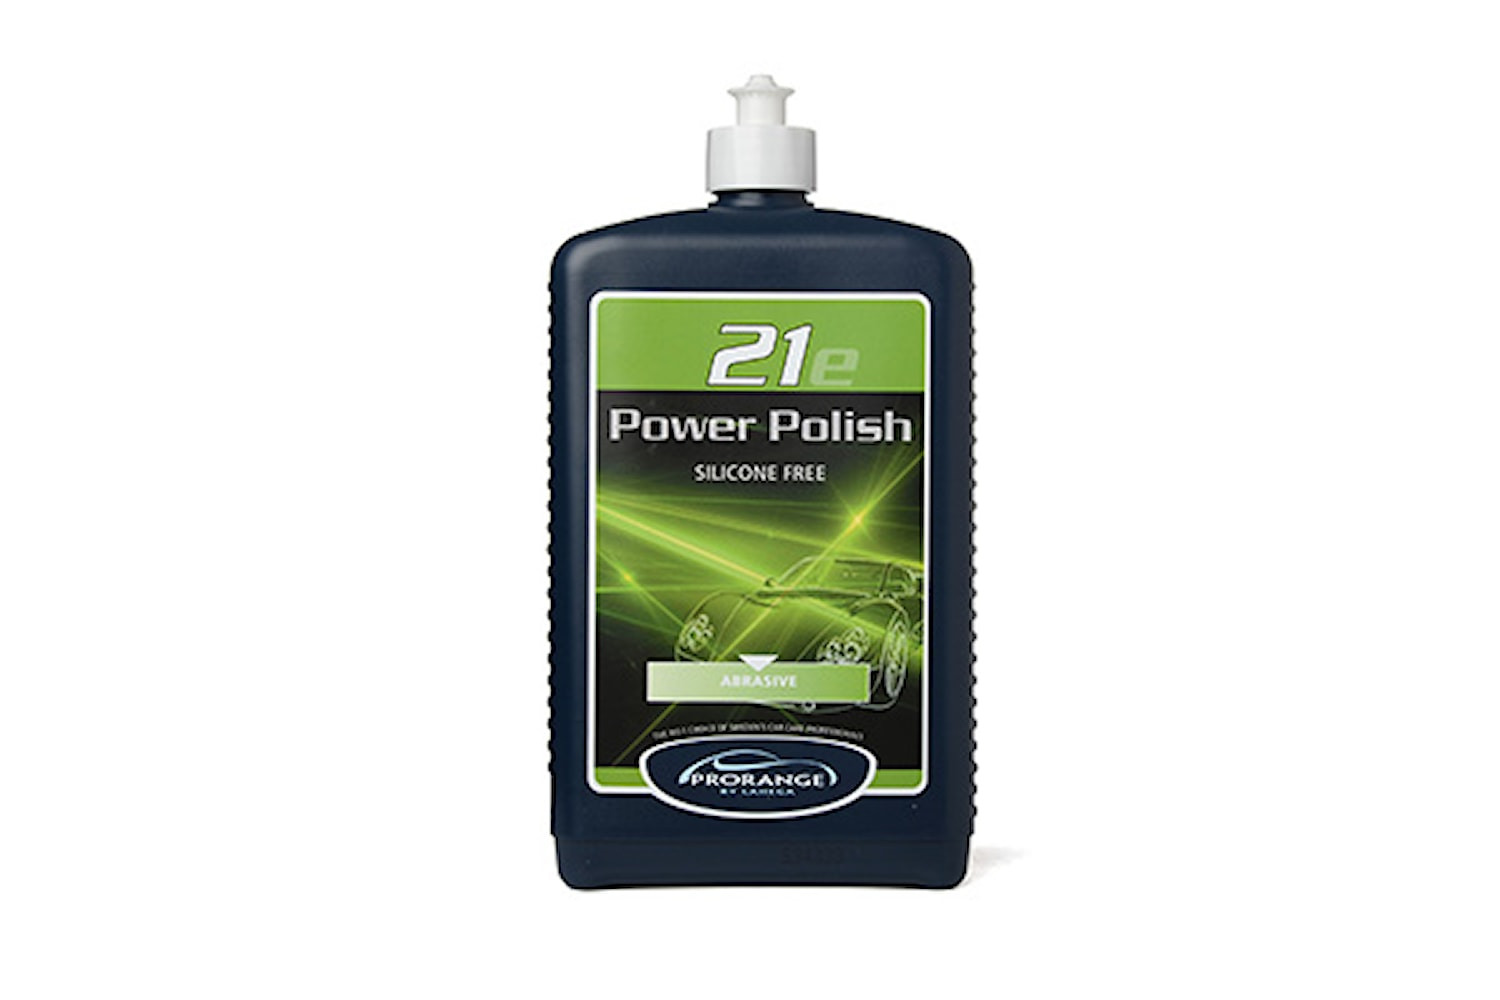 Prorange Power Polish 21e  1L